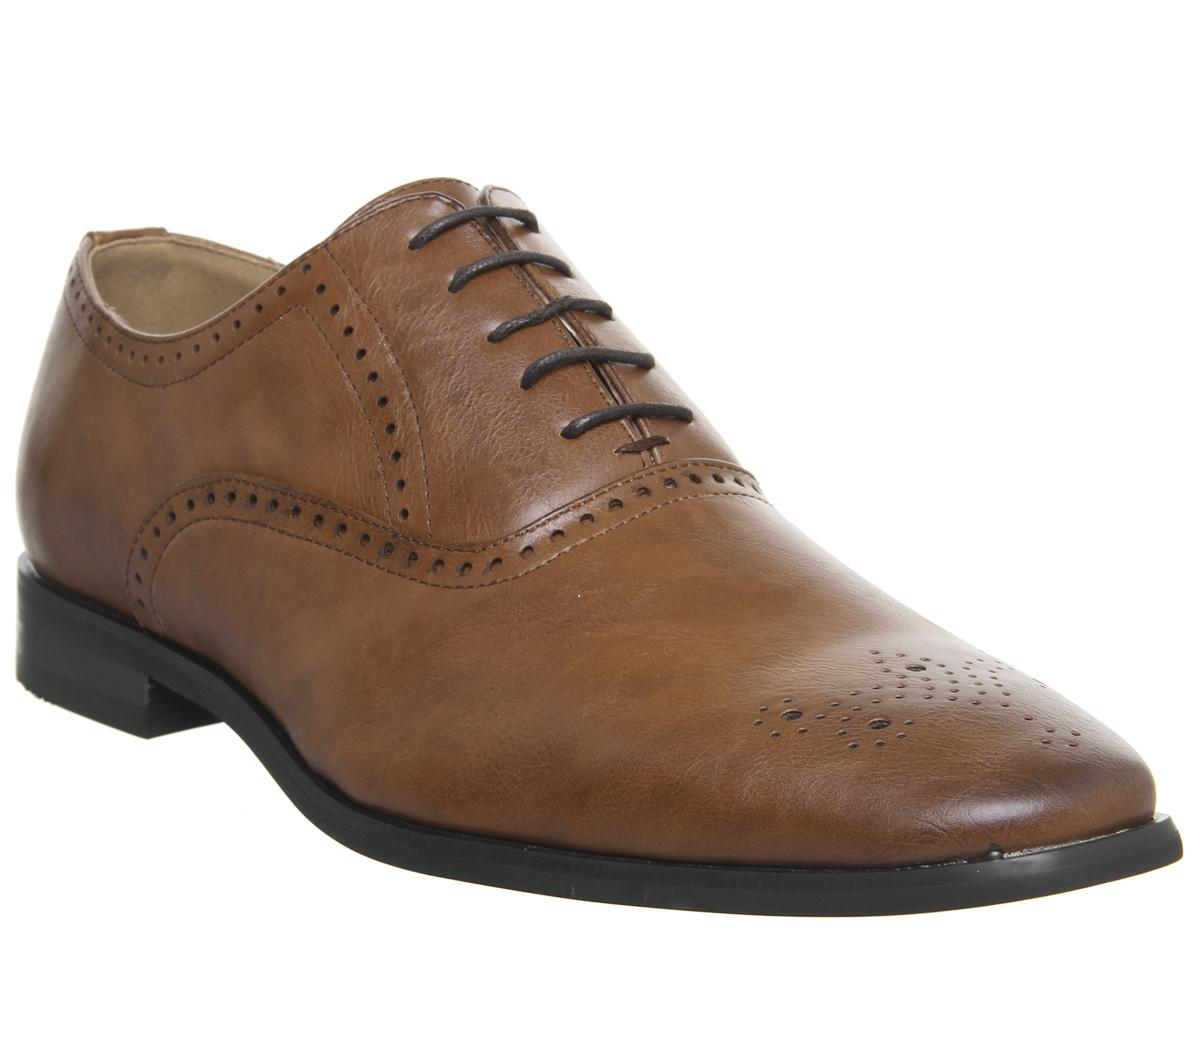 Idolise Oxford Shoes